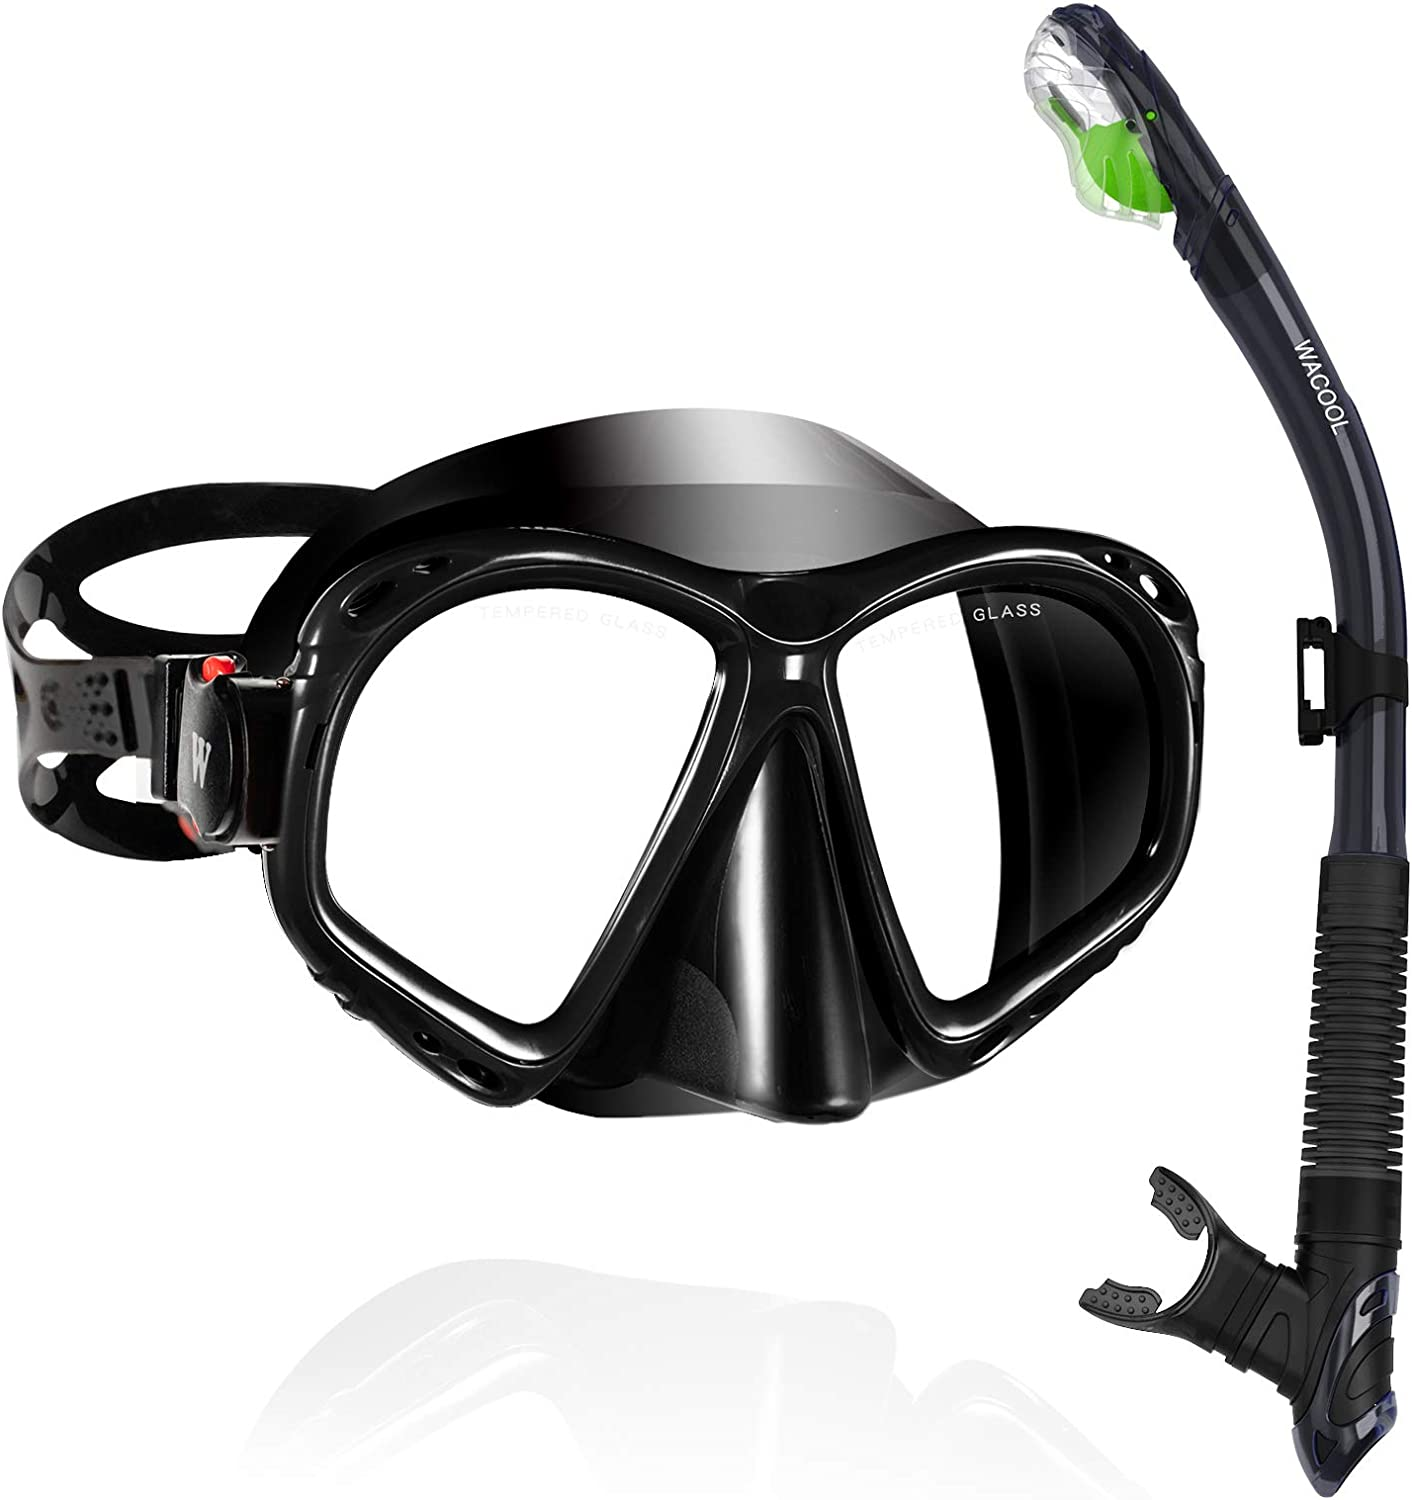 WACOOL Snorkeling Package Set for Adults Anti-Fog Coated Glass Diving Mask Snorkel with Silicon Mouth Piece,Purge Valve and Anti-Splash Guard w//Travel Short Swim Fins